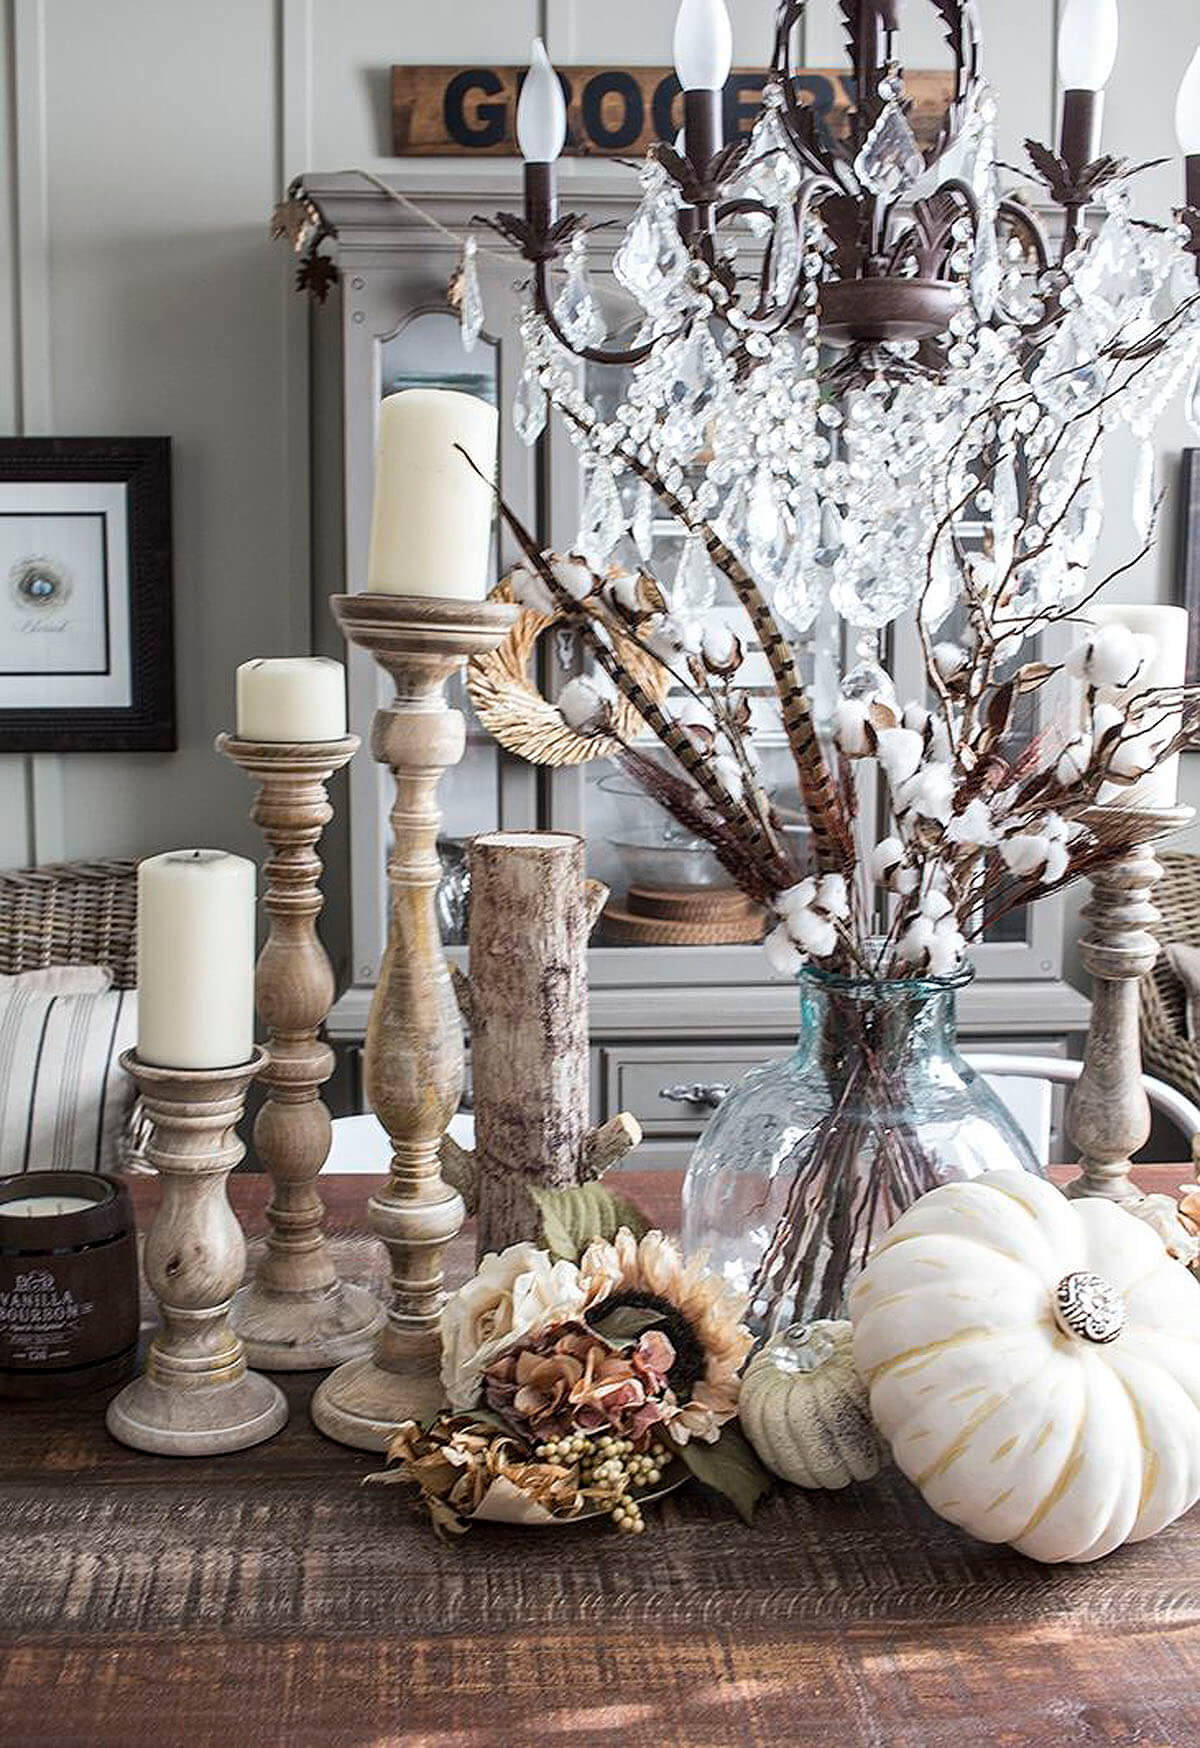 5. A Stunningly Sophisticated Harvest Centerpiece